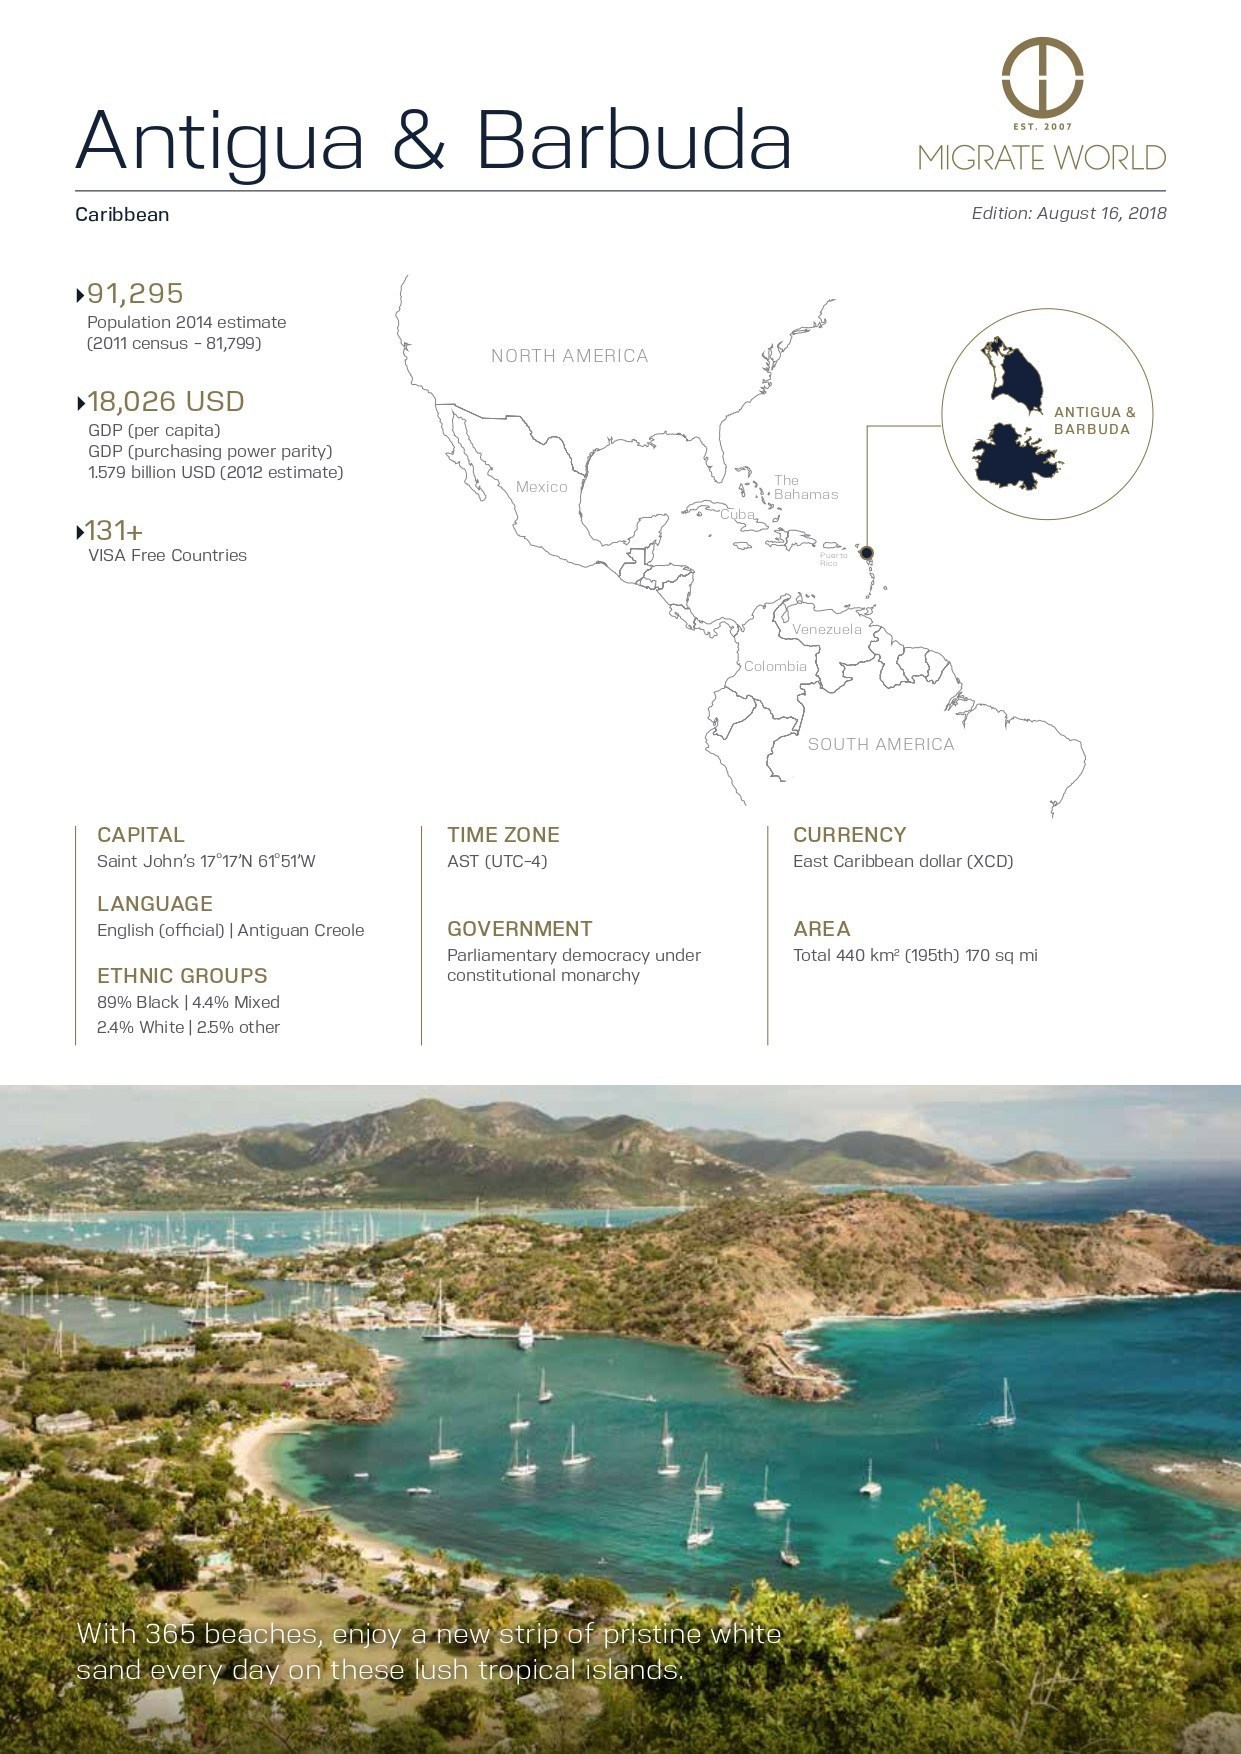 Antigua & Barbuda Program Brochure